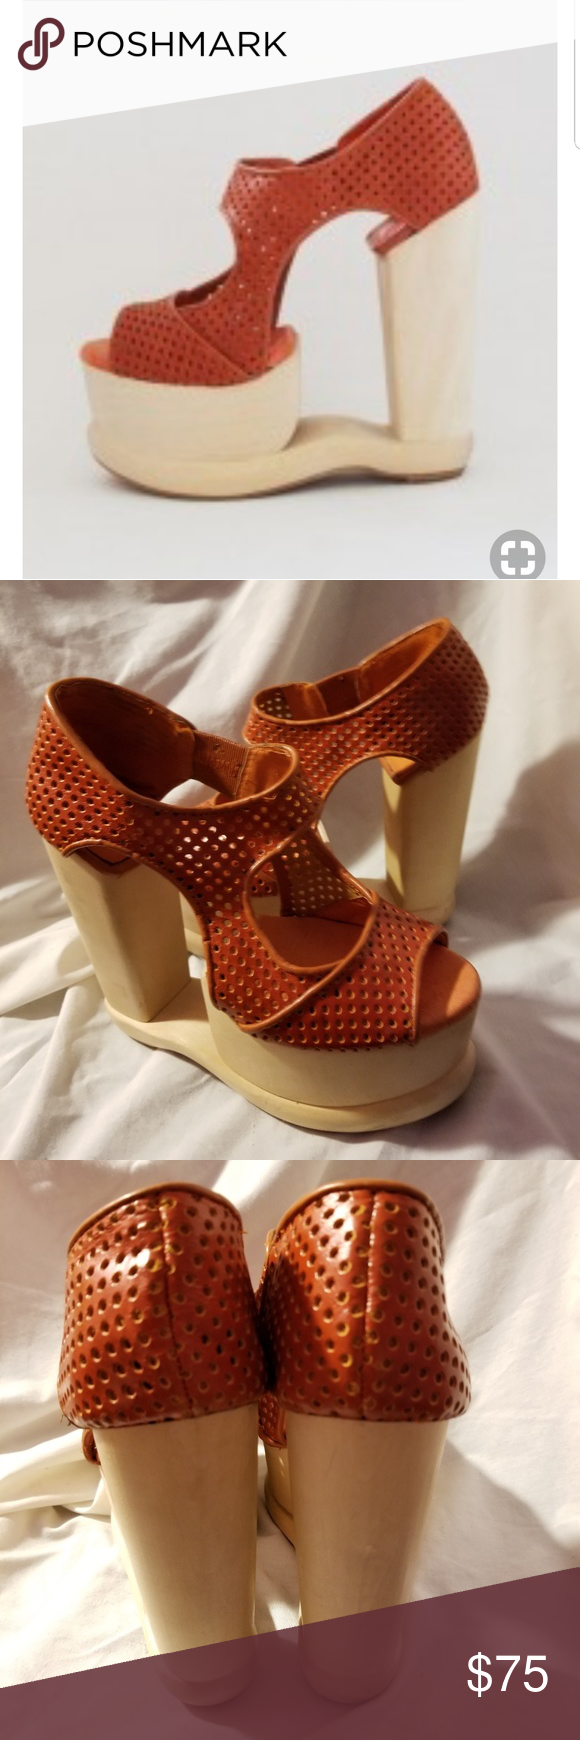 c339787f0f2 Jeffrey Campbell Skyroom platform heels 7 M woodie A dramatic three-piece wooden  platform and heel define a sky-high sandal fashioned from perforated nubuck  ...